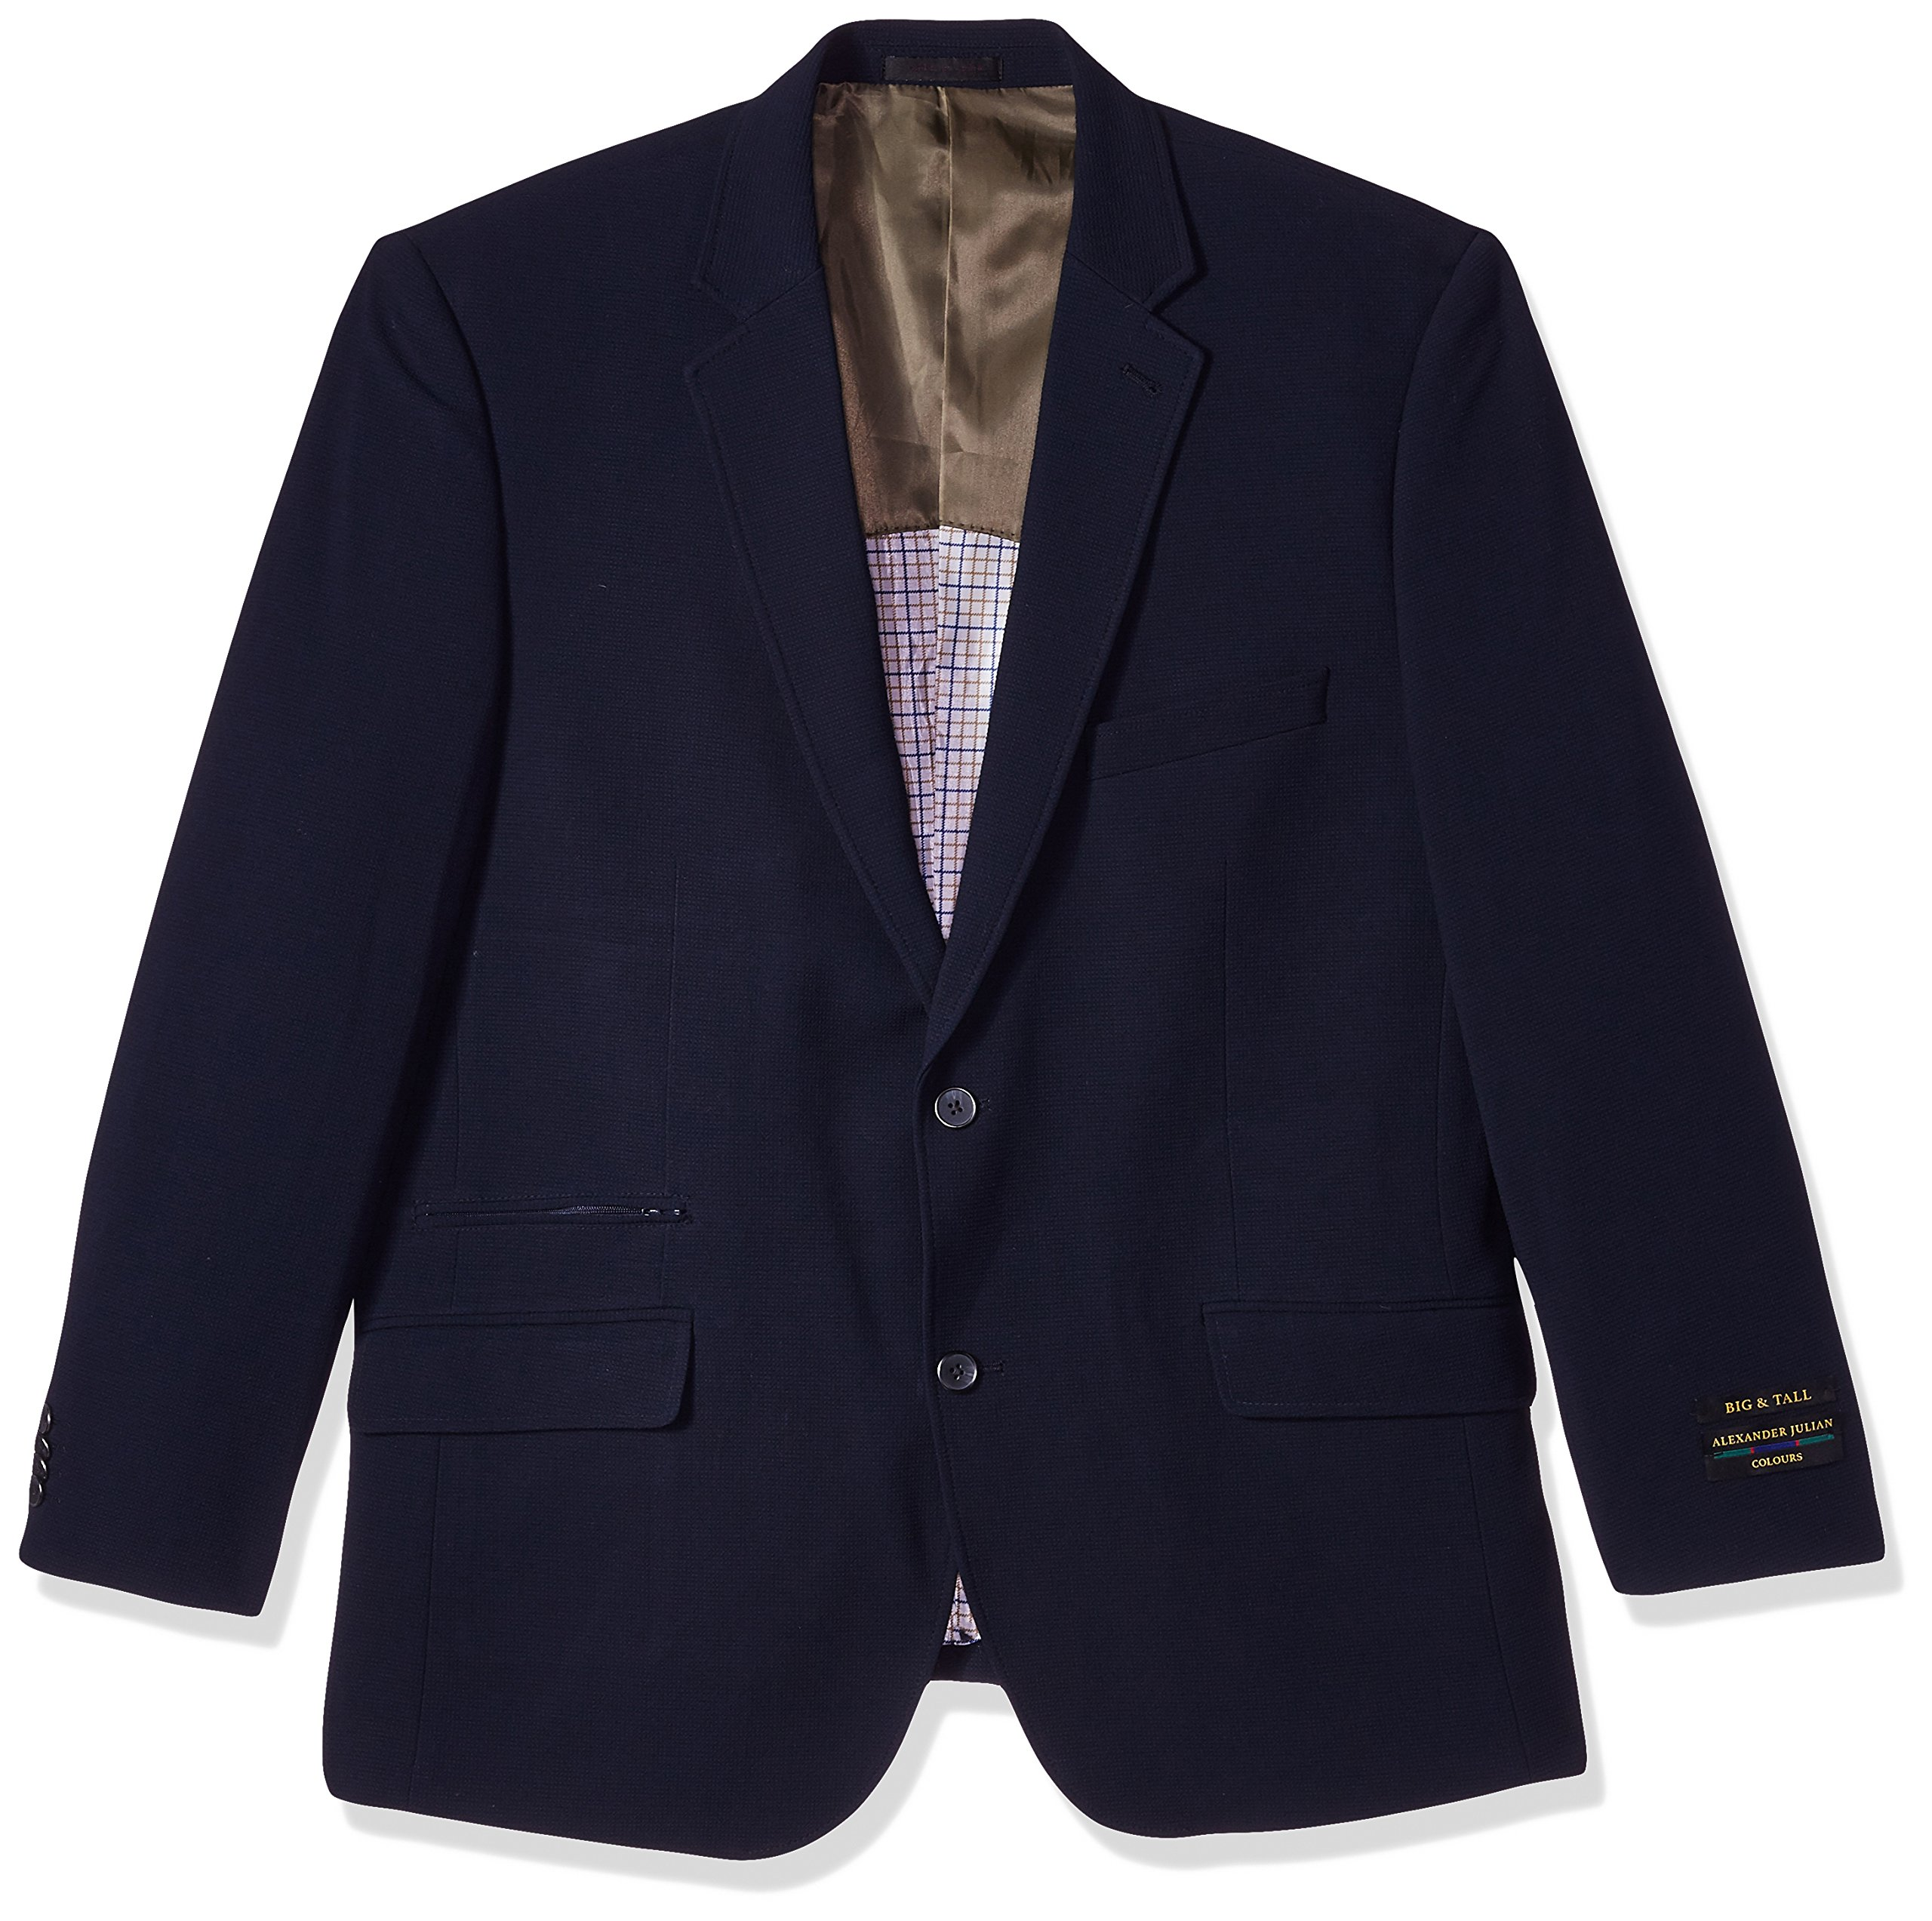 Alexander Julian Colours Men's Big and Tall Single Breasted Knit Travel Sportcoat, Navy Texture, 50 Regular